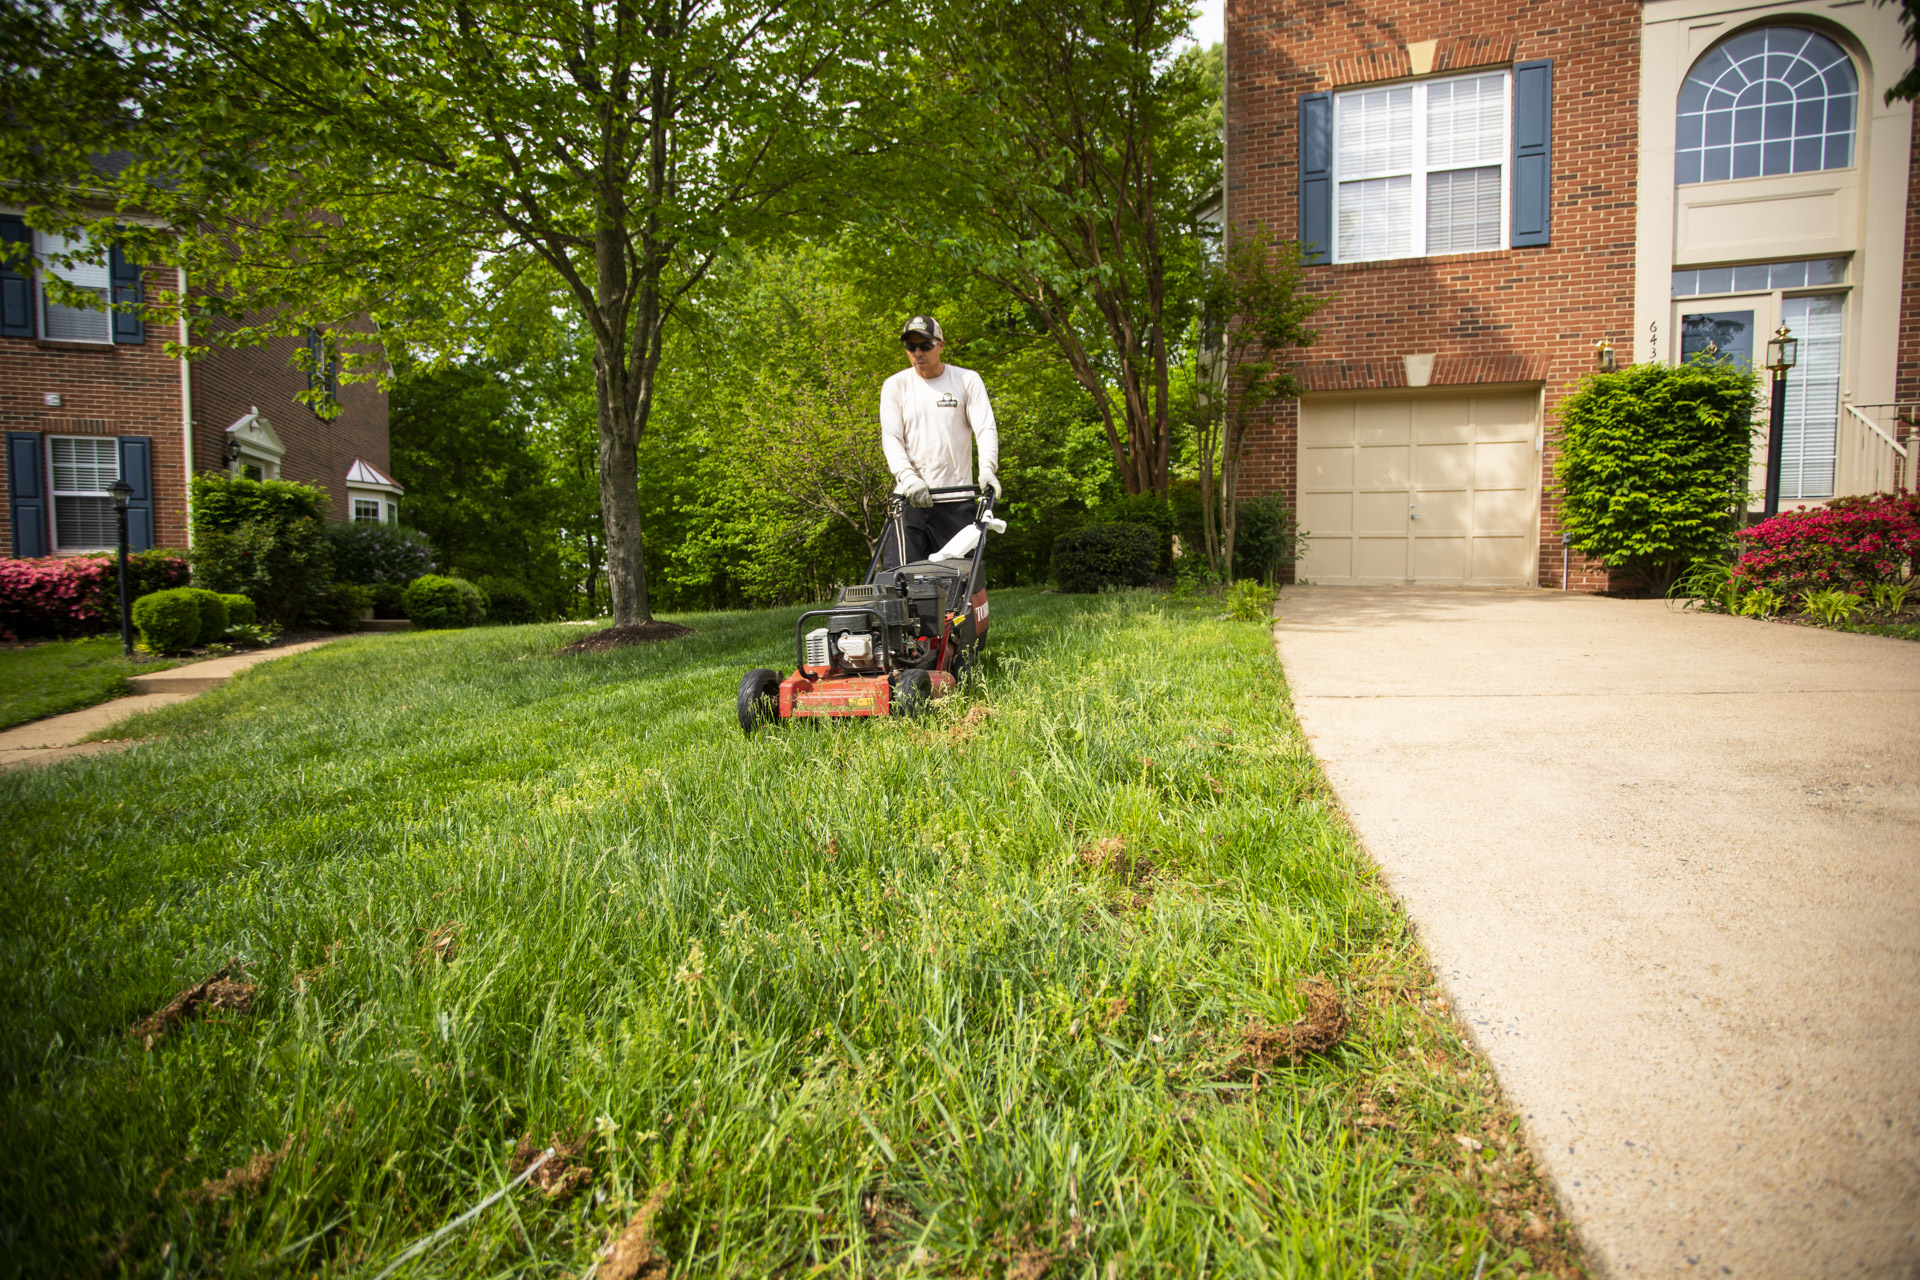 lawn care company technician mowing lawn in Virginia